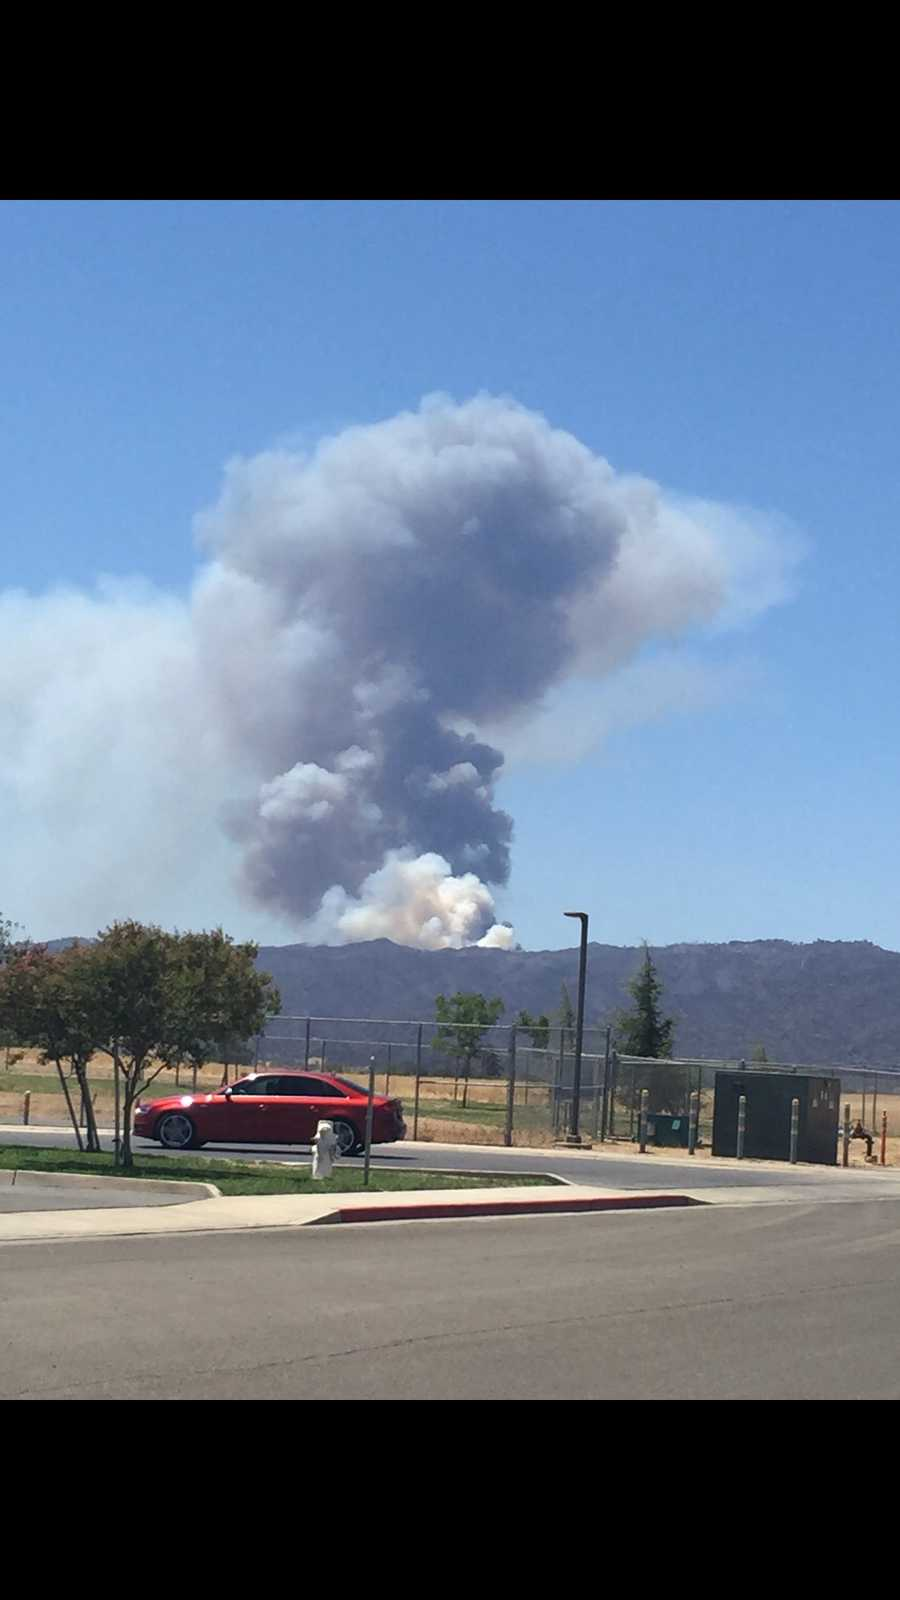 See photos of Tuesday's flare-up in the so-called Wragg Fire burning near Lake Berryessa. (July 28, 2015)